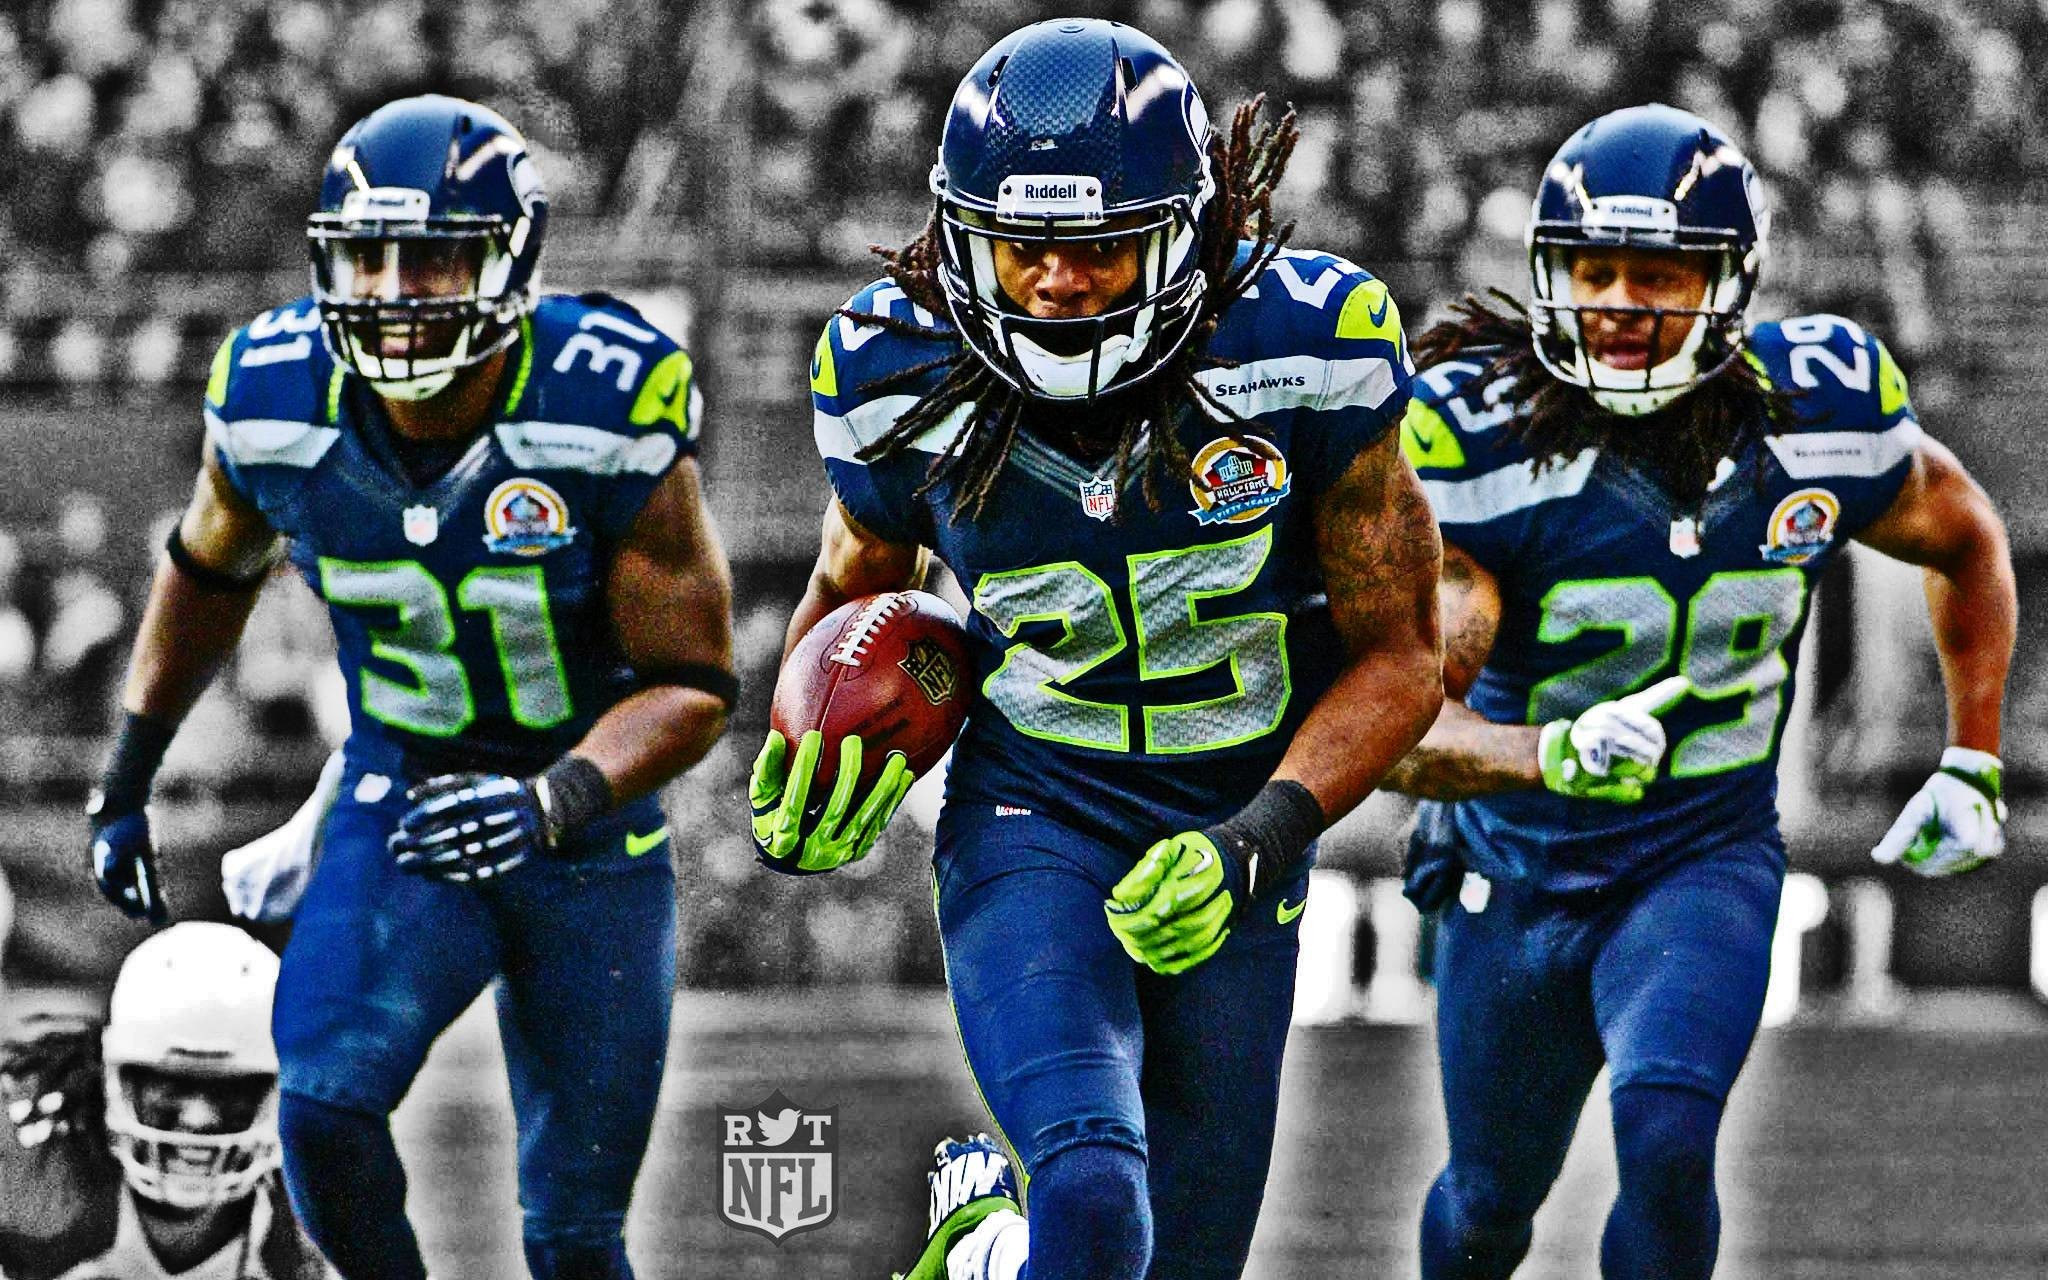 american football hd wallpapers ›› Page 0